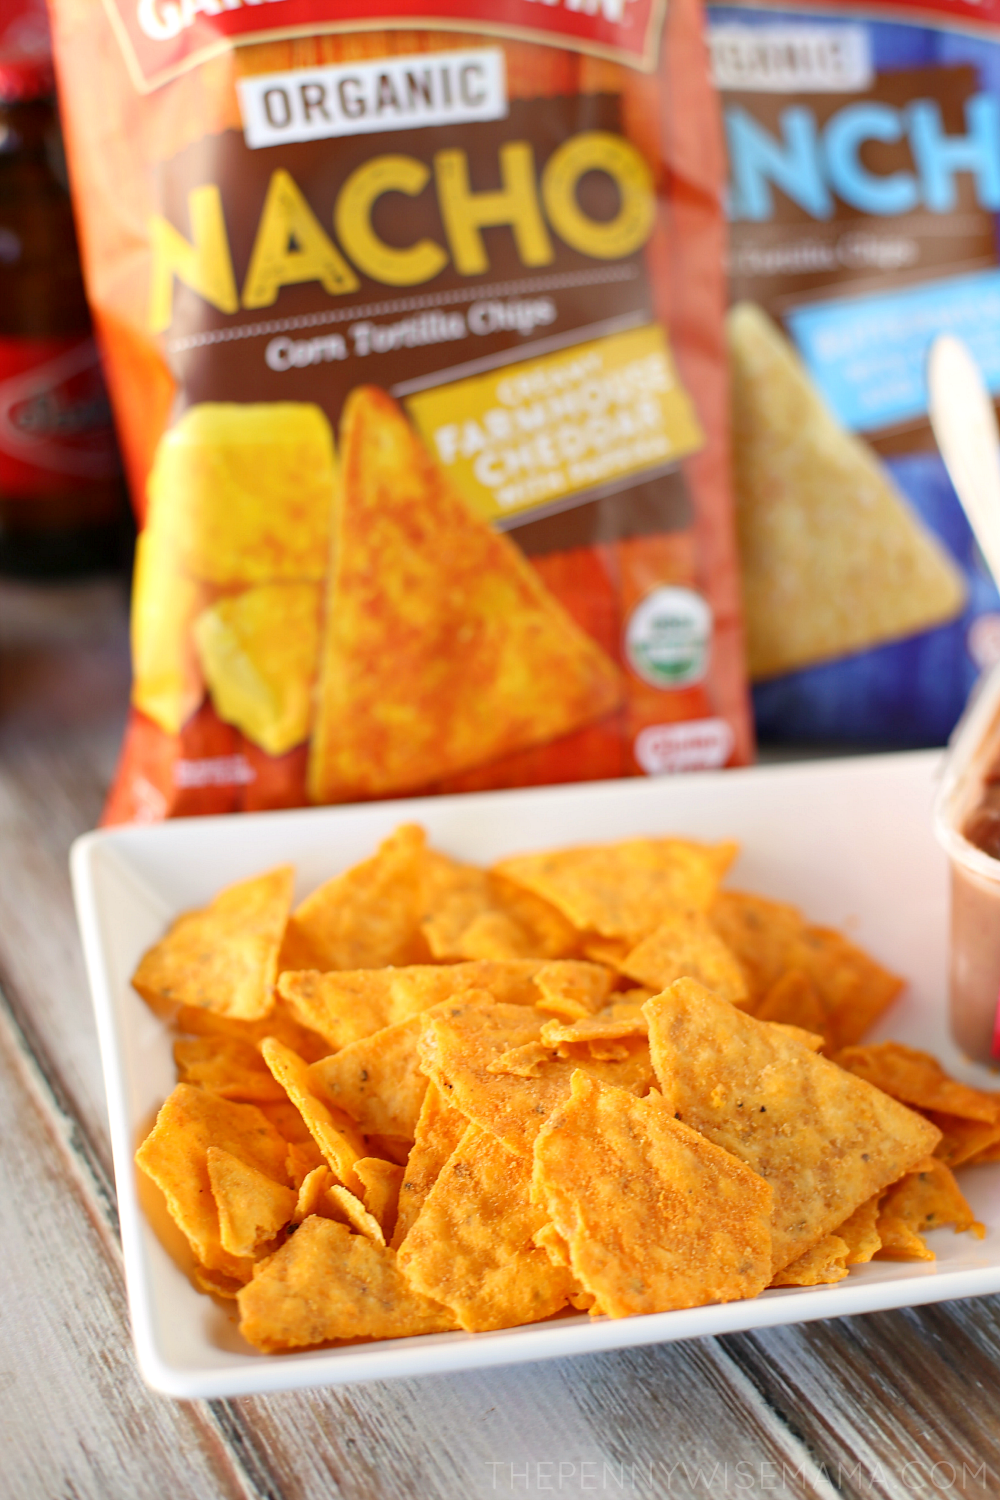 Garden of Eatin' Nacho Tortilla Chips